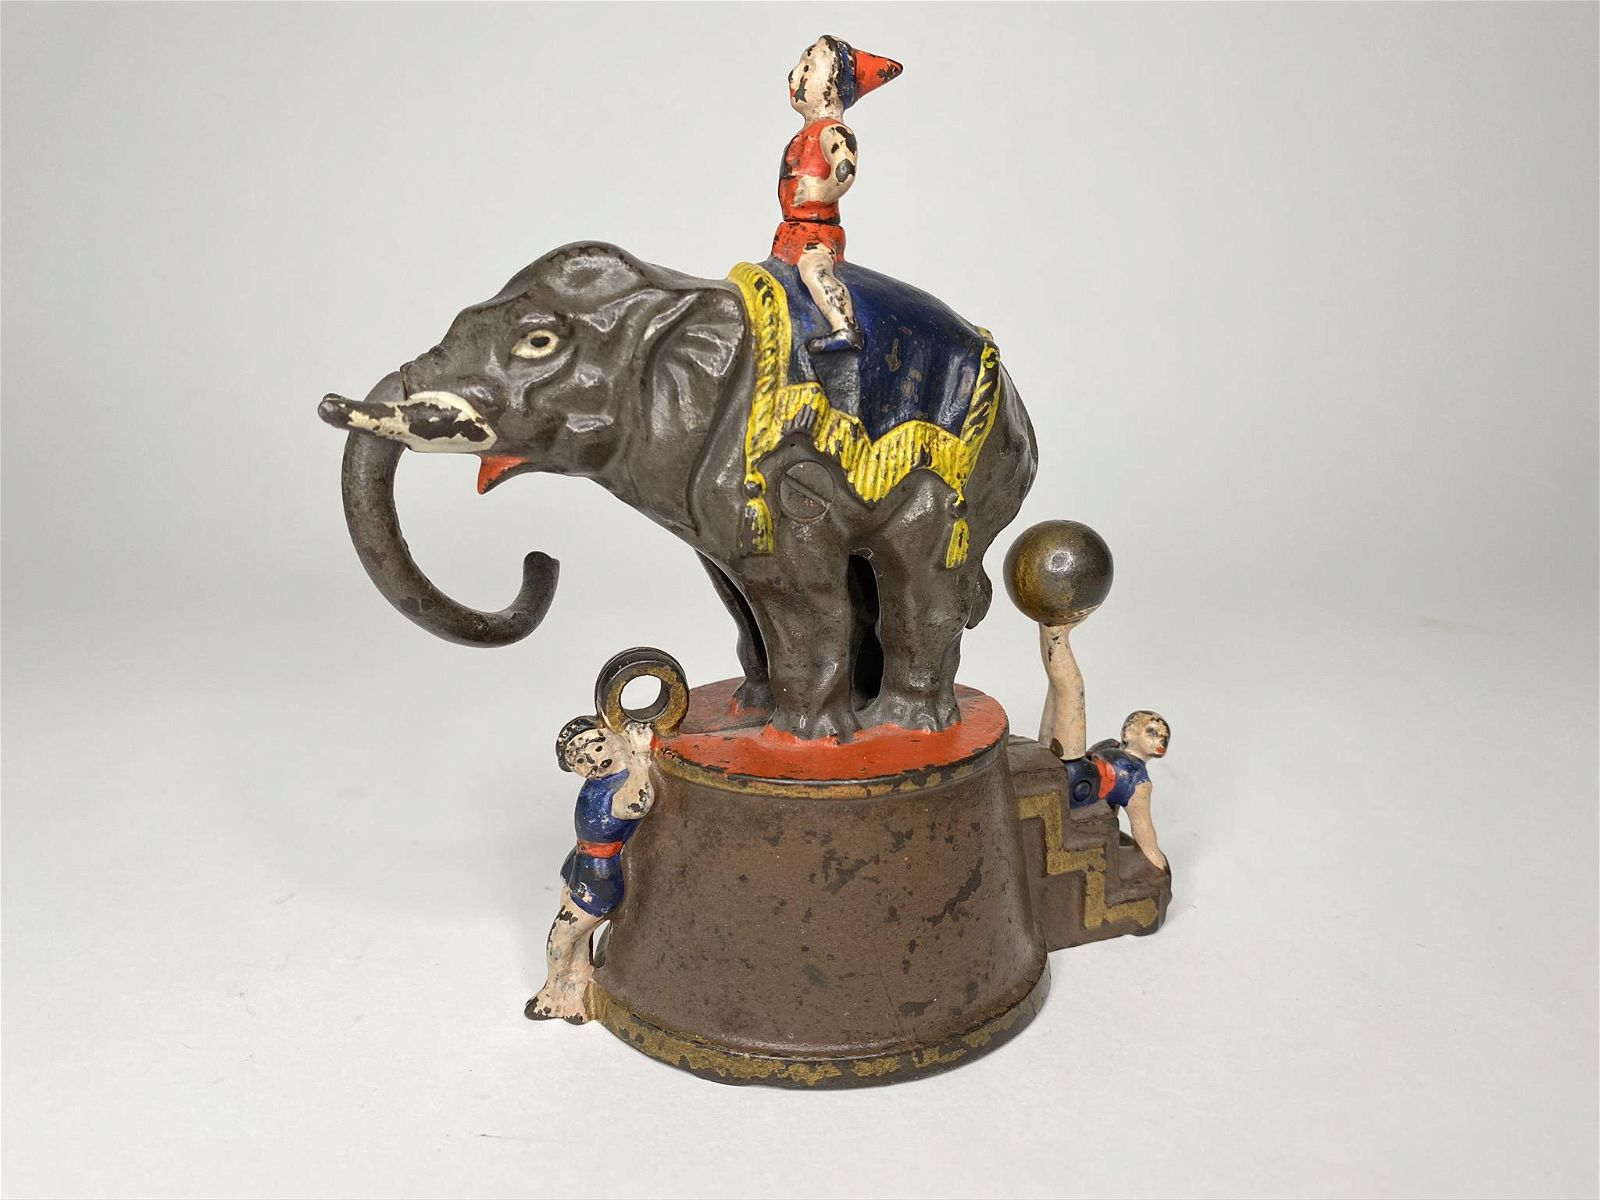 Elephant and Three Clowns Mechanical Bank